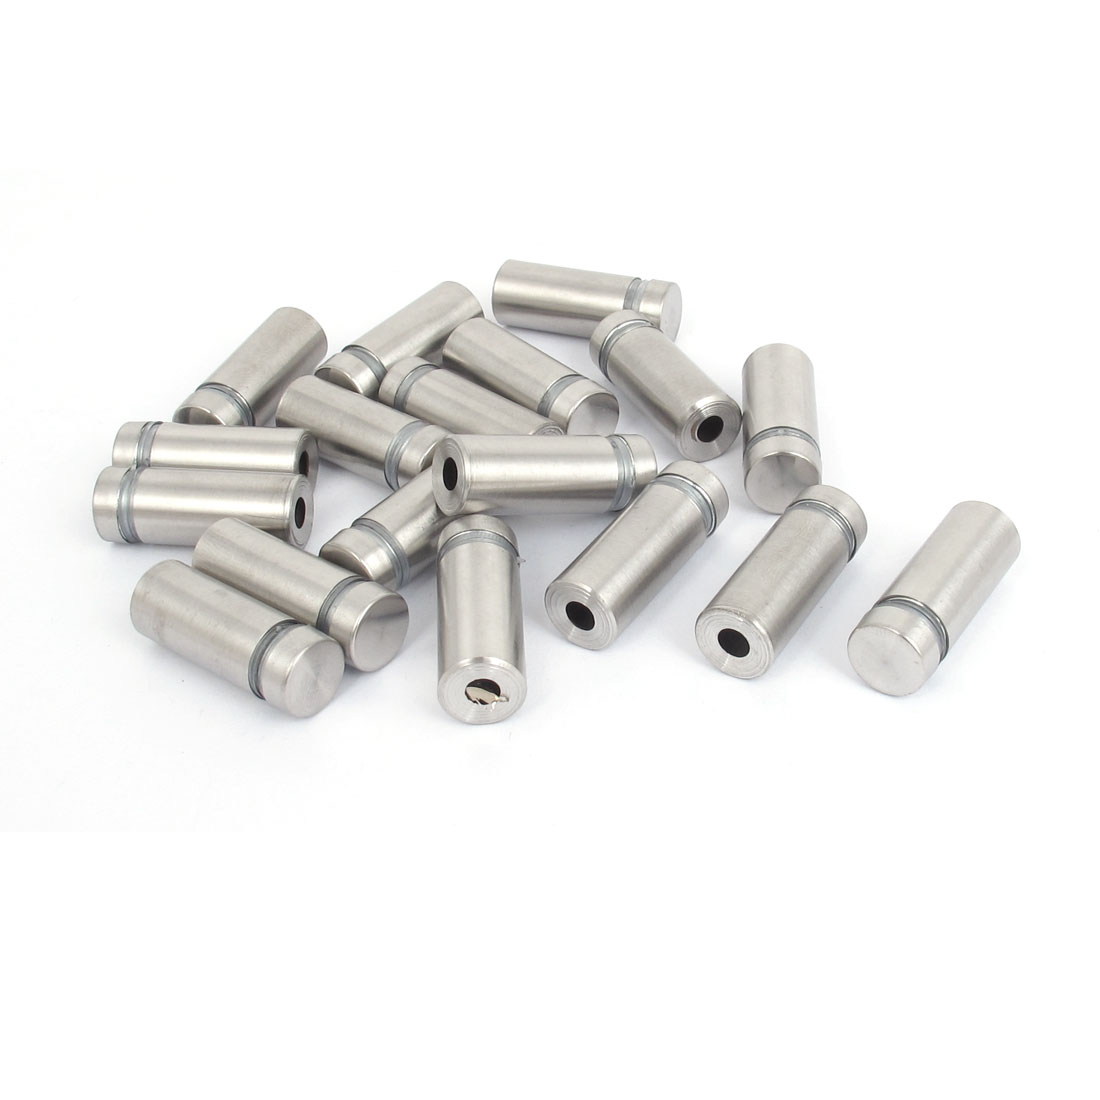 12mm x 30mm Stainless Steel Advertising Frameless Glass Standoff Pins 18pcs